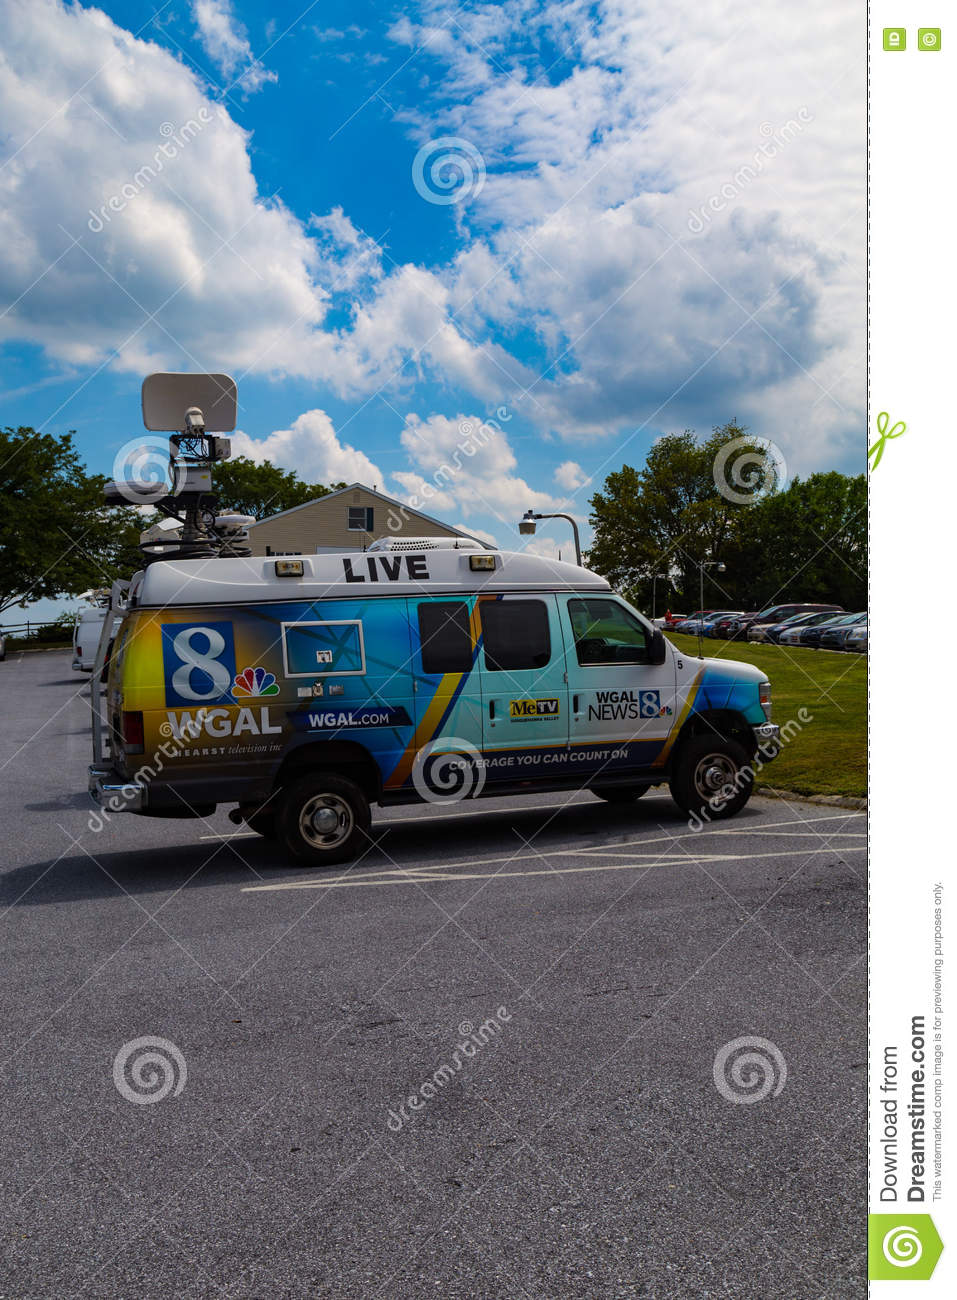 WGAL TV Channel 8 News Truck Editorial Image - Image of